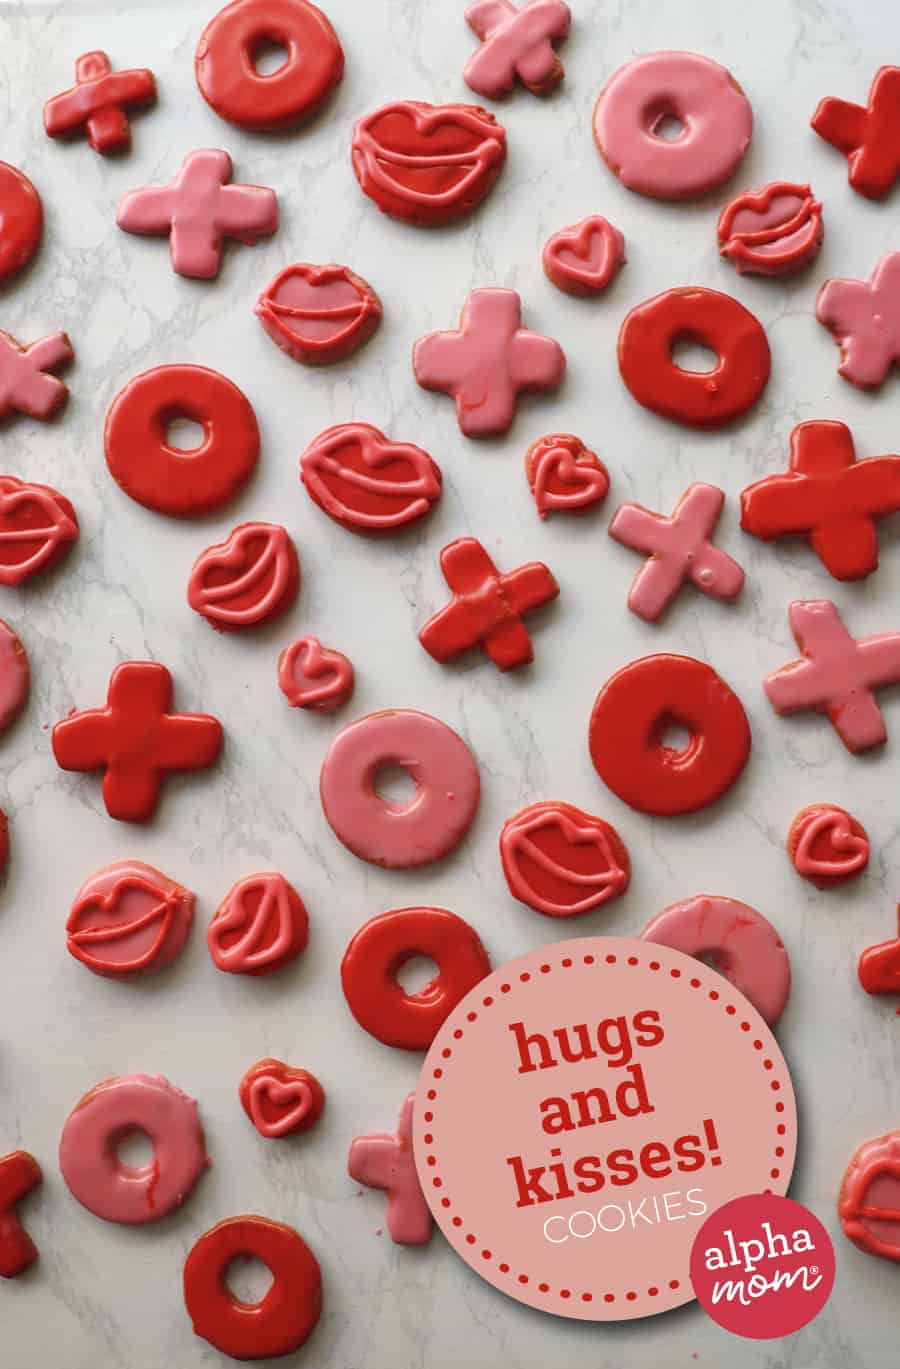 overhead photo of red and pink Valentine's Day cookies that are lips and Xs and Os representing hugs and kisses